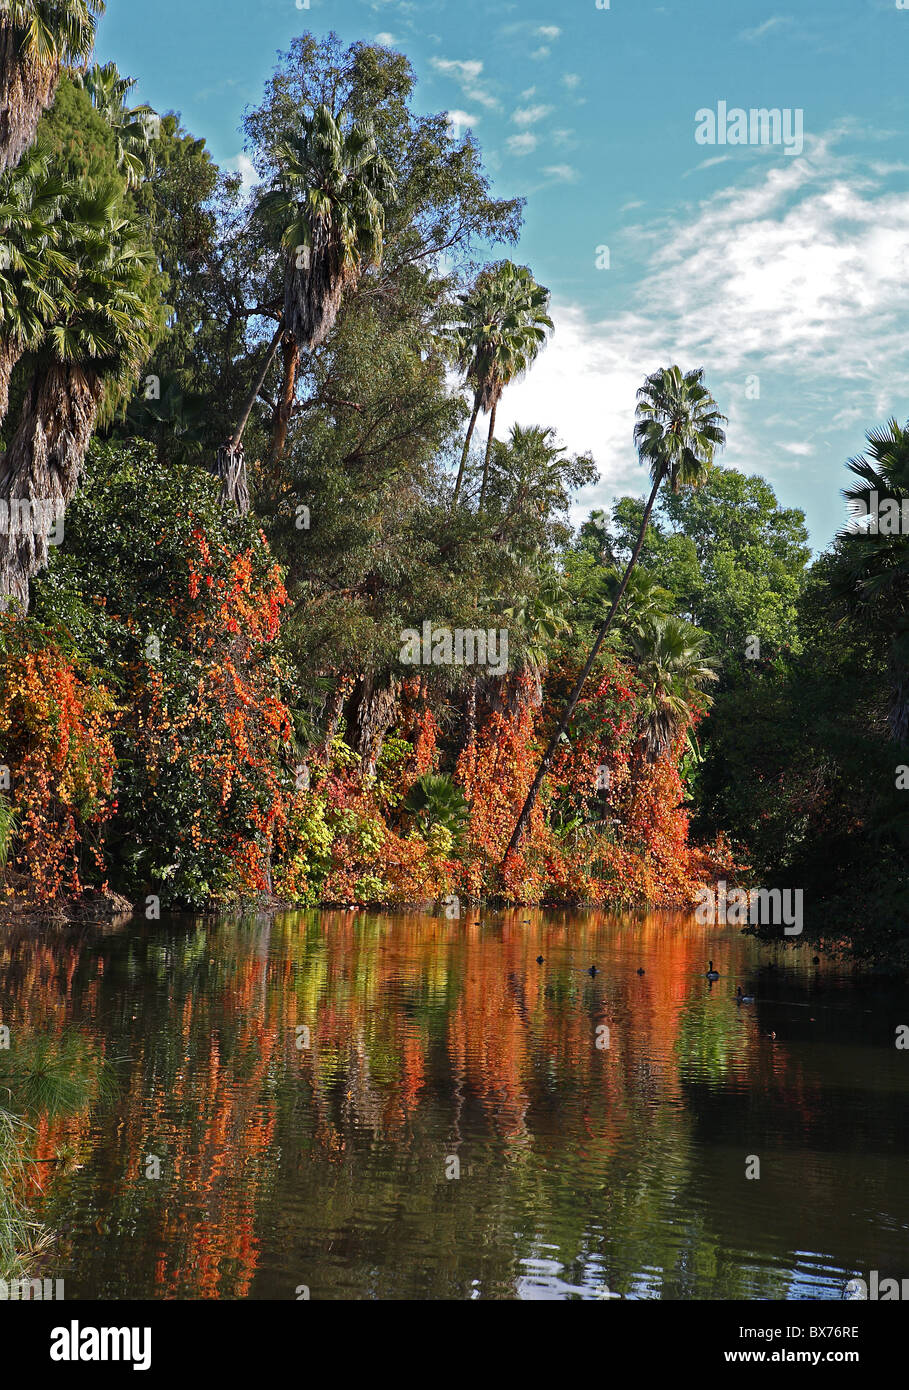 Colorful reflecting Fall pond with trees in California in December - Stock Image